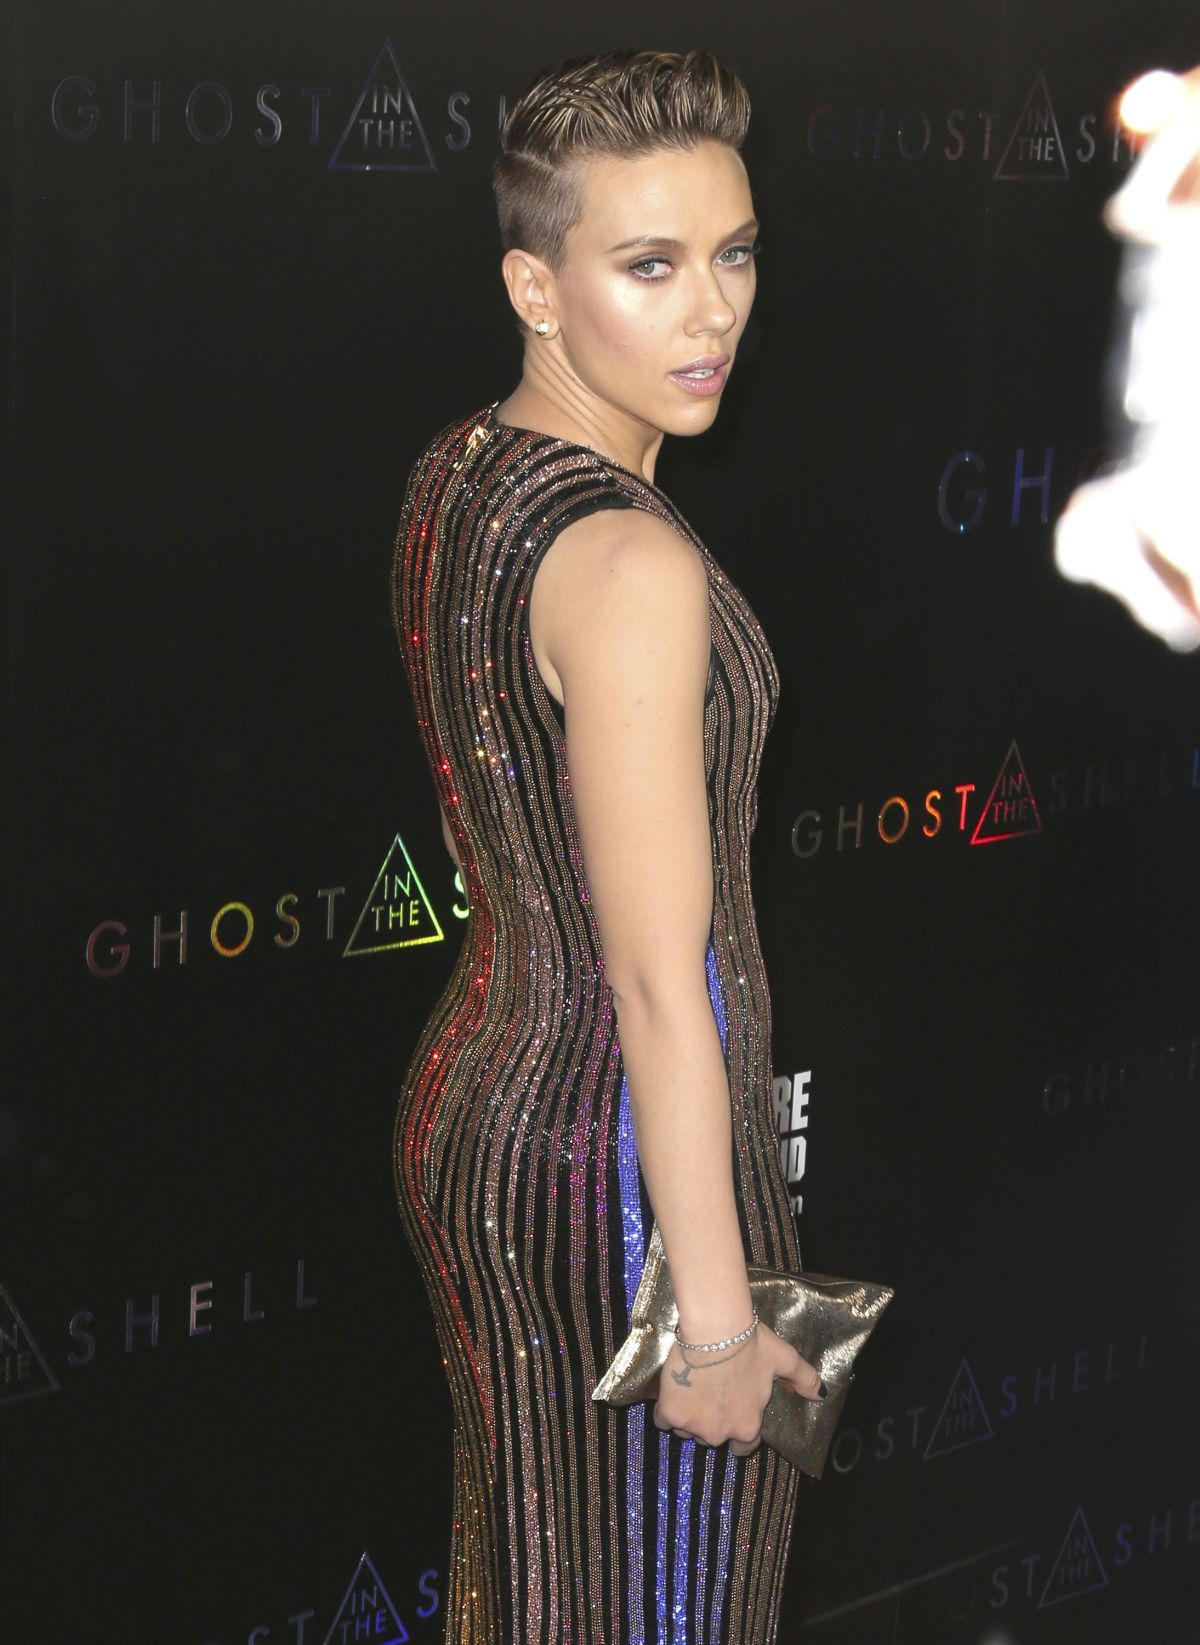 Scarlett Johansson At Ghost In The Shell Premiere In New York 03 29 2017 2 Hawtcelebs